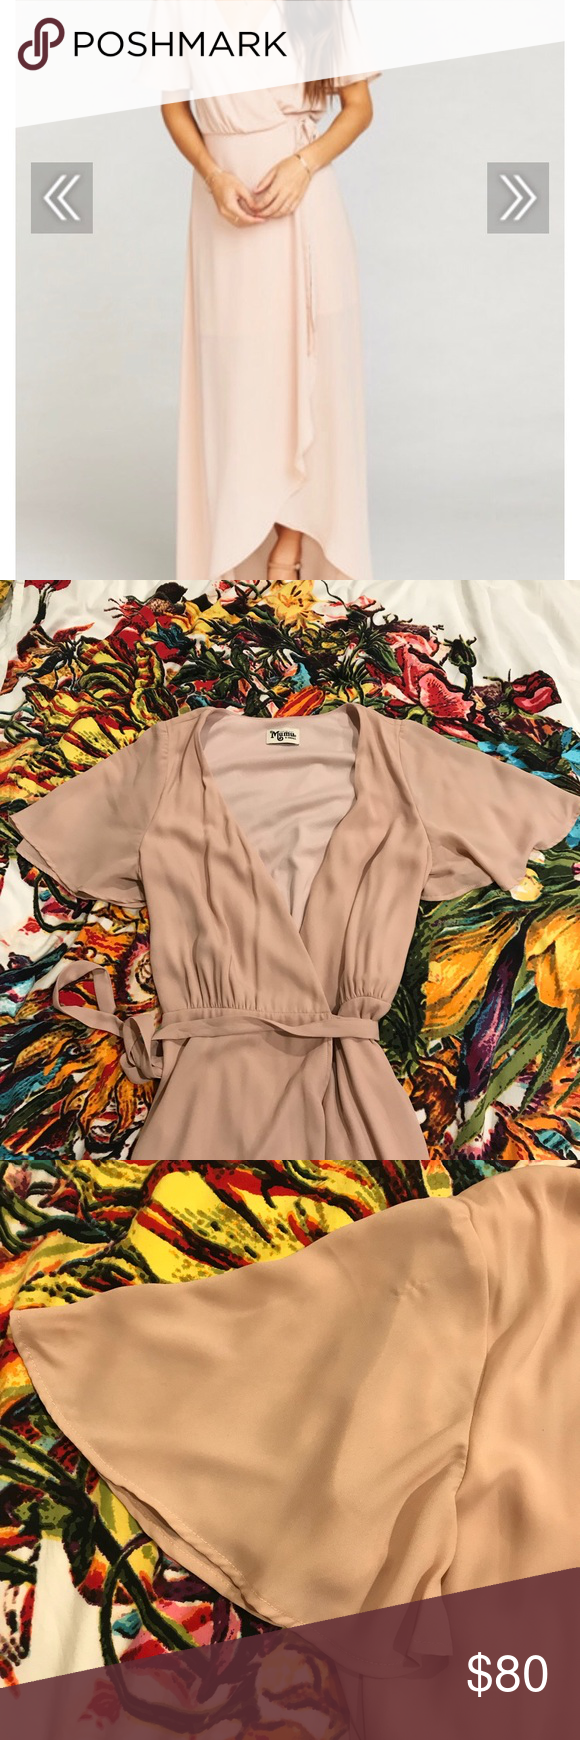 f42f6005d9 Show Me Your MuMu Sophia Wrap Dress Dusty Blush Purchased this for a  wedding (it s